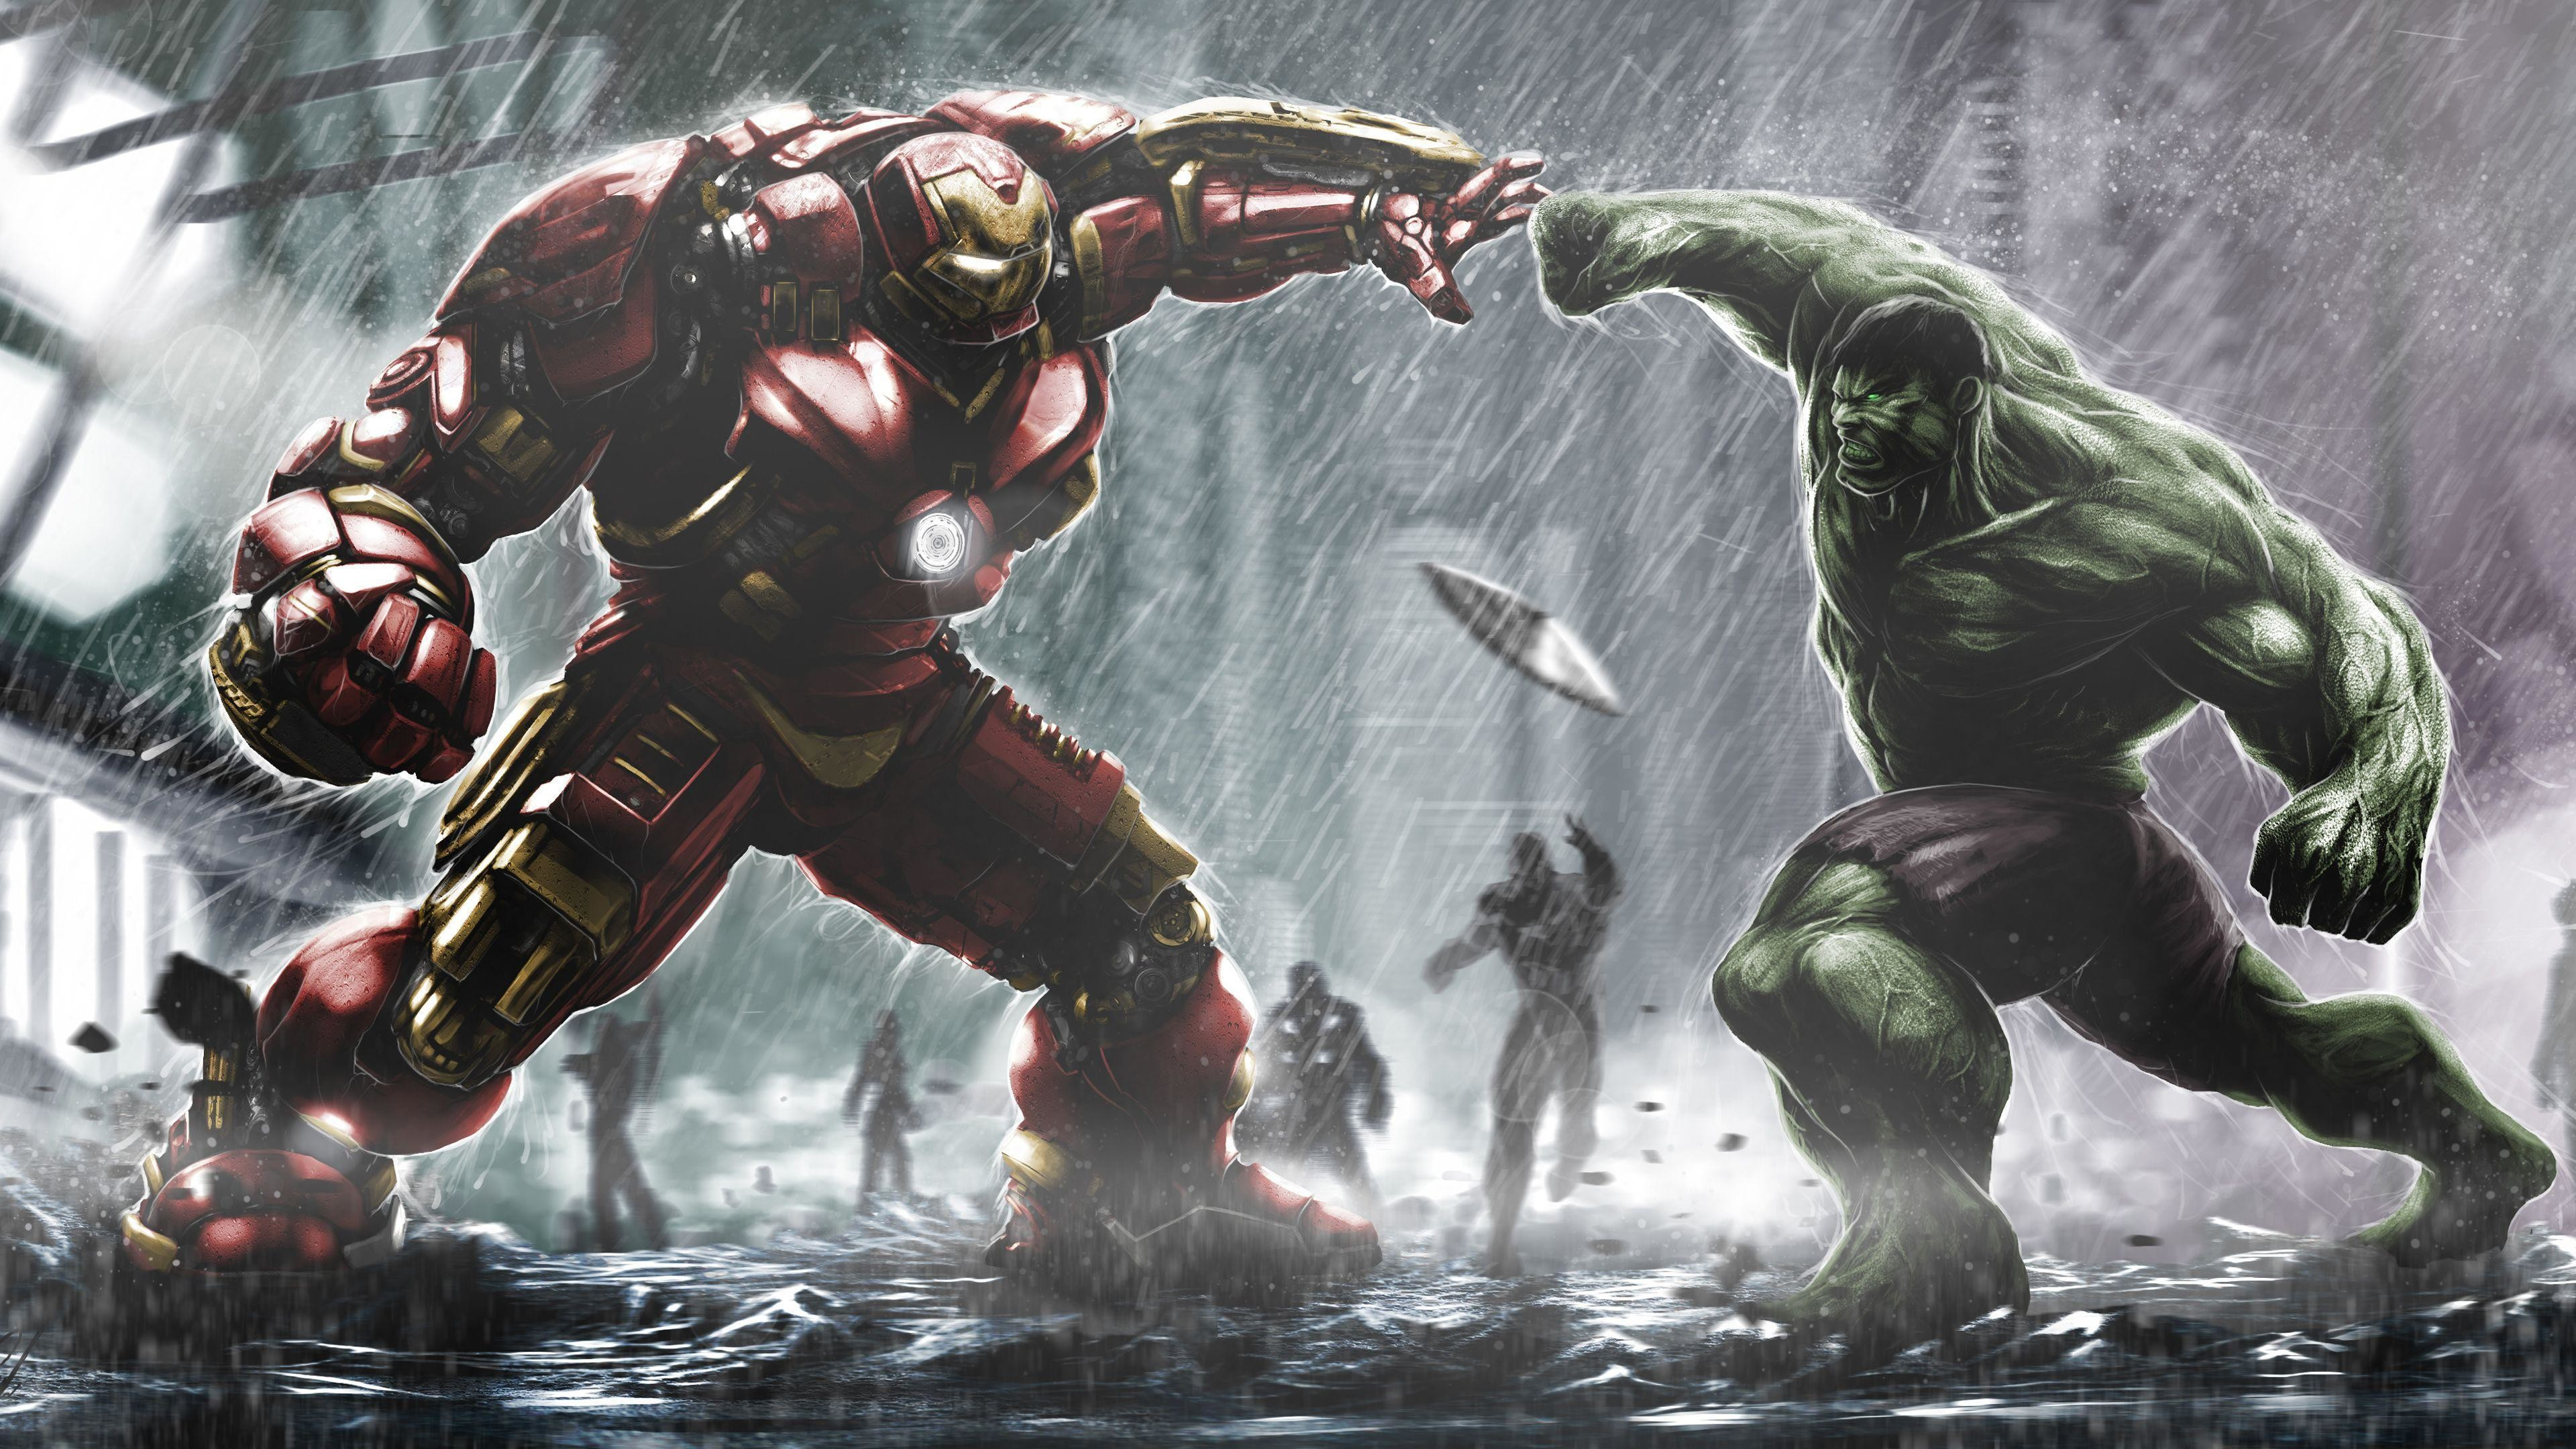 hulk vs hulkbuster wallpapers (73+ images)